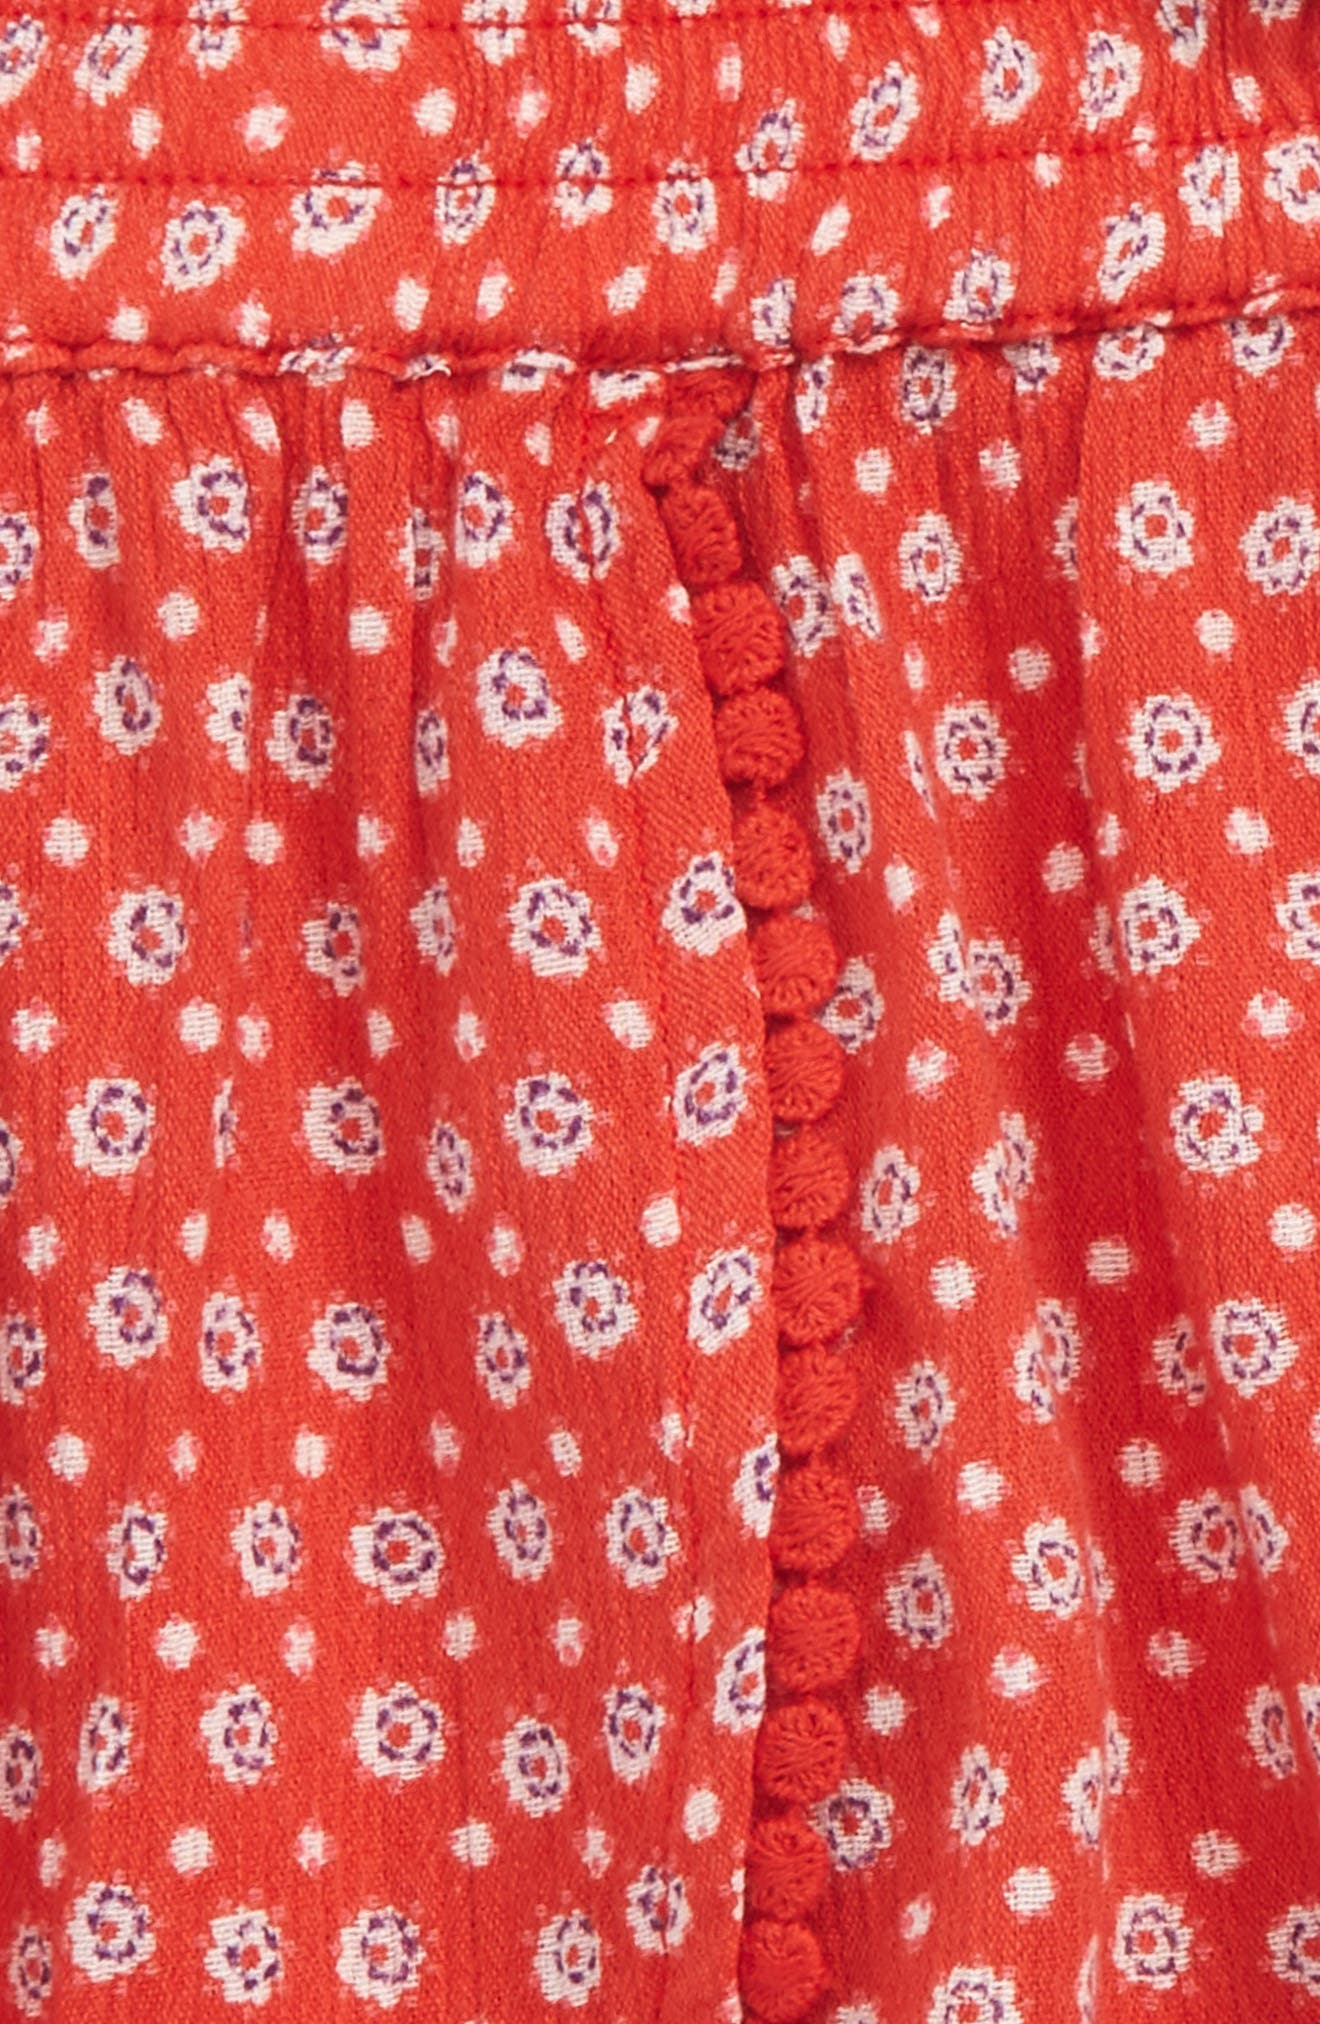 Print Shorts,                             Alternate thumbnail 2, color,                             Red Lava Spotty Floral